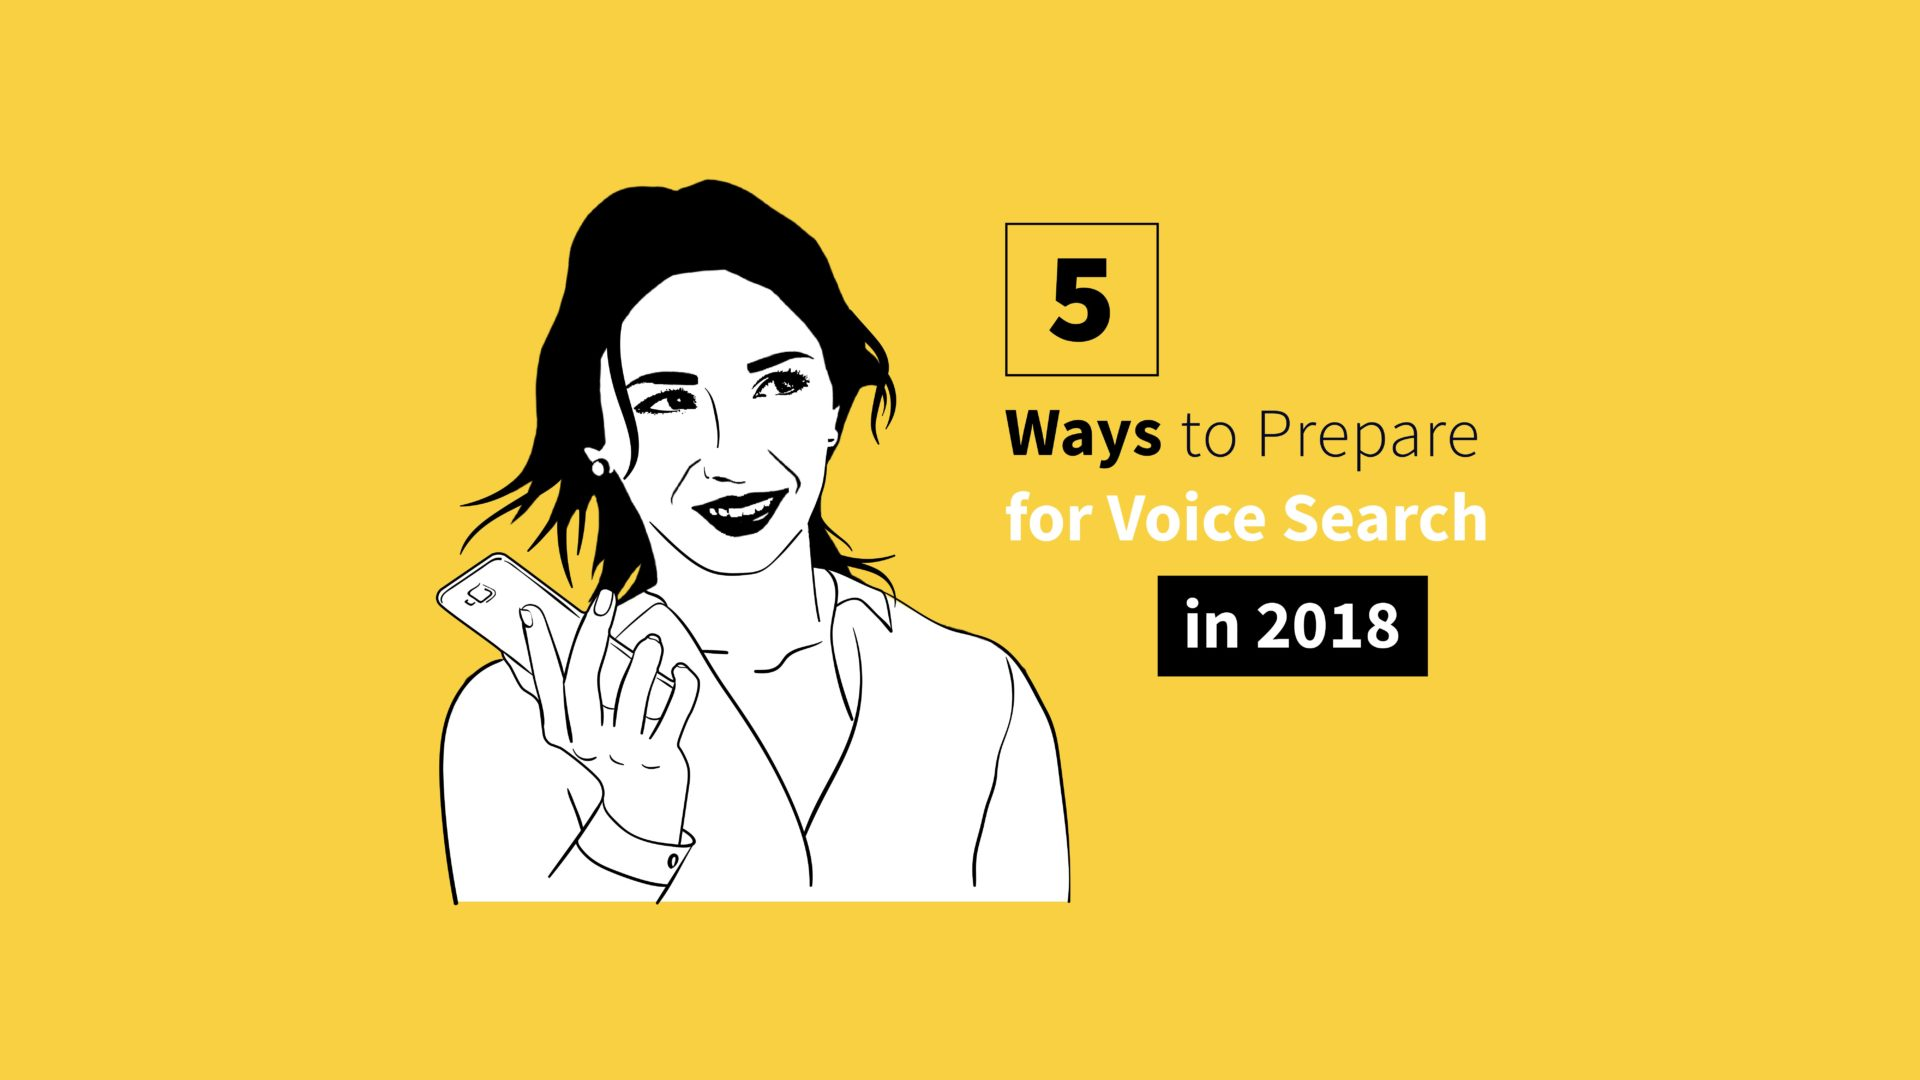 5 Ways to Prepare for Voice Search in 2018